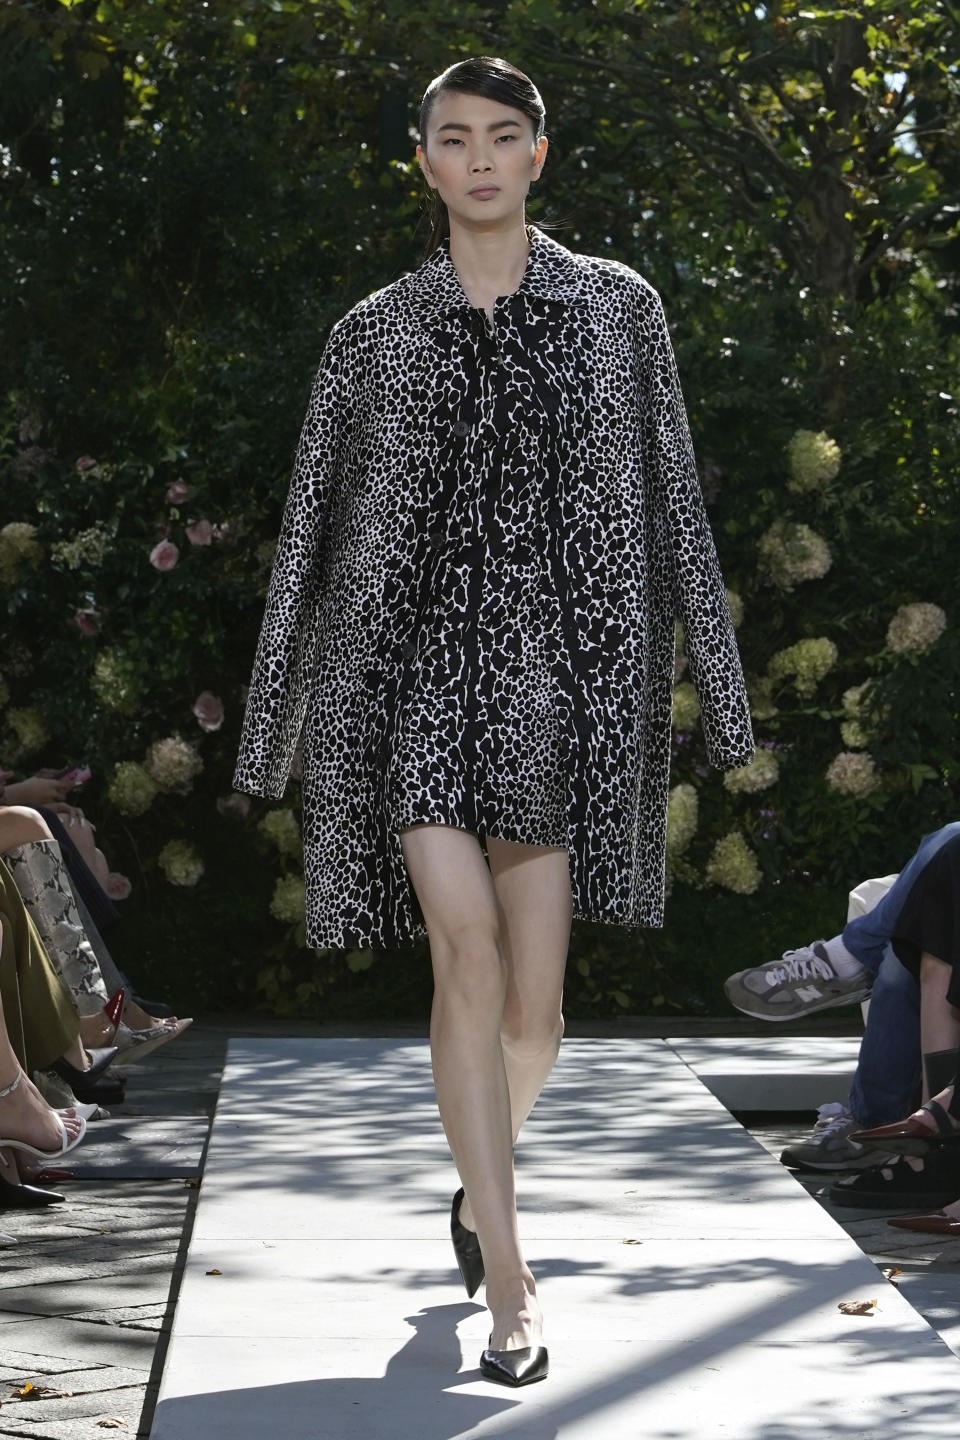 The Michael Kors Spring/Summer 2022 collection is modeled during Fashion Week, in New York, Friday, Sept. 10, 2021. (AP Photo/Richard Drew)